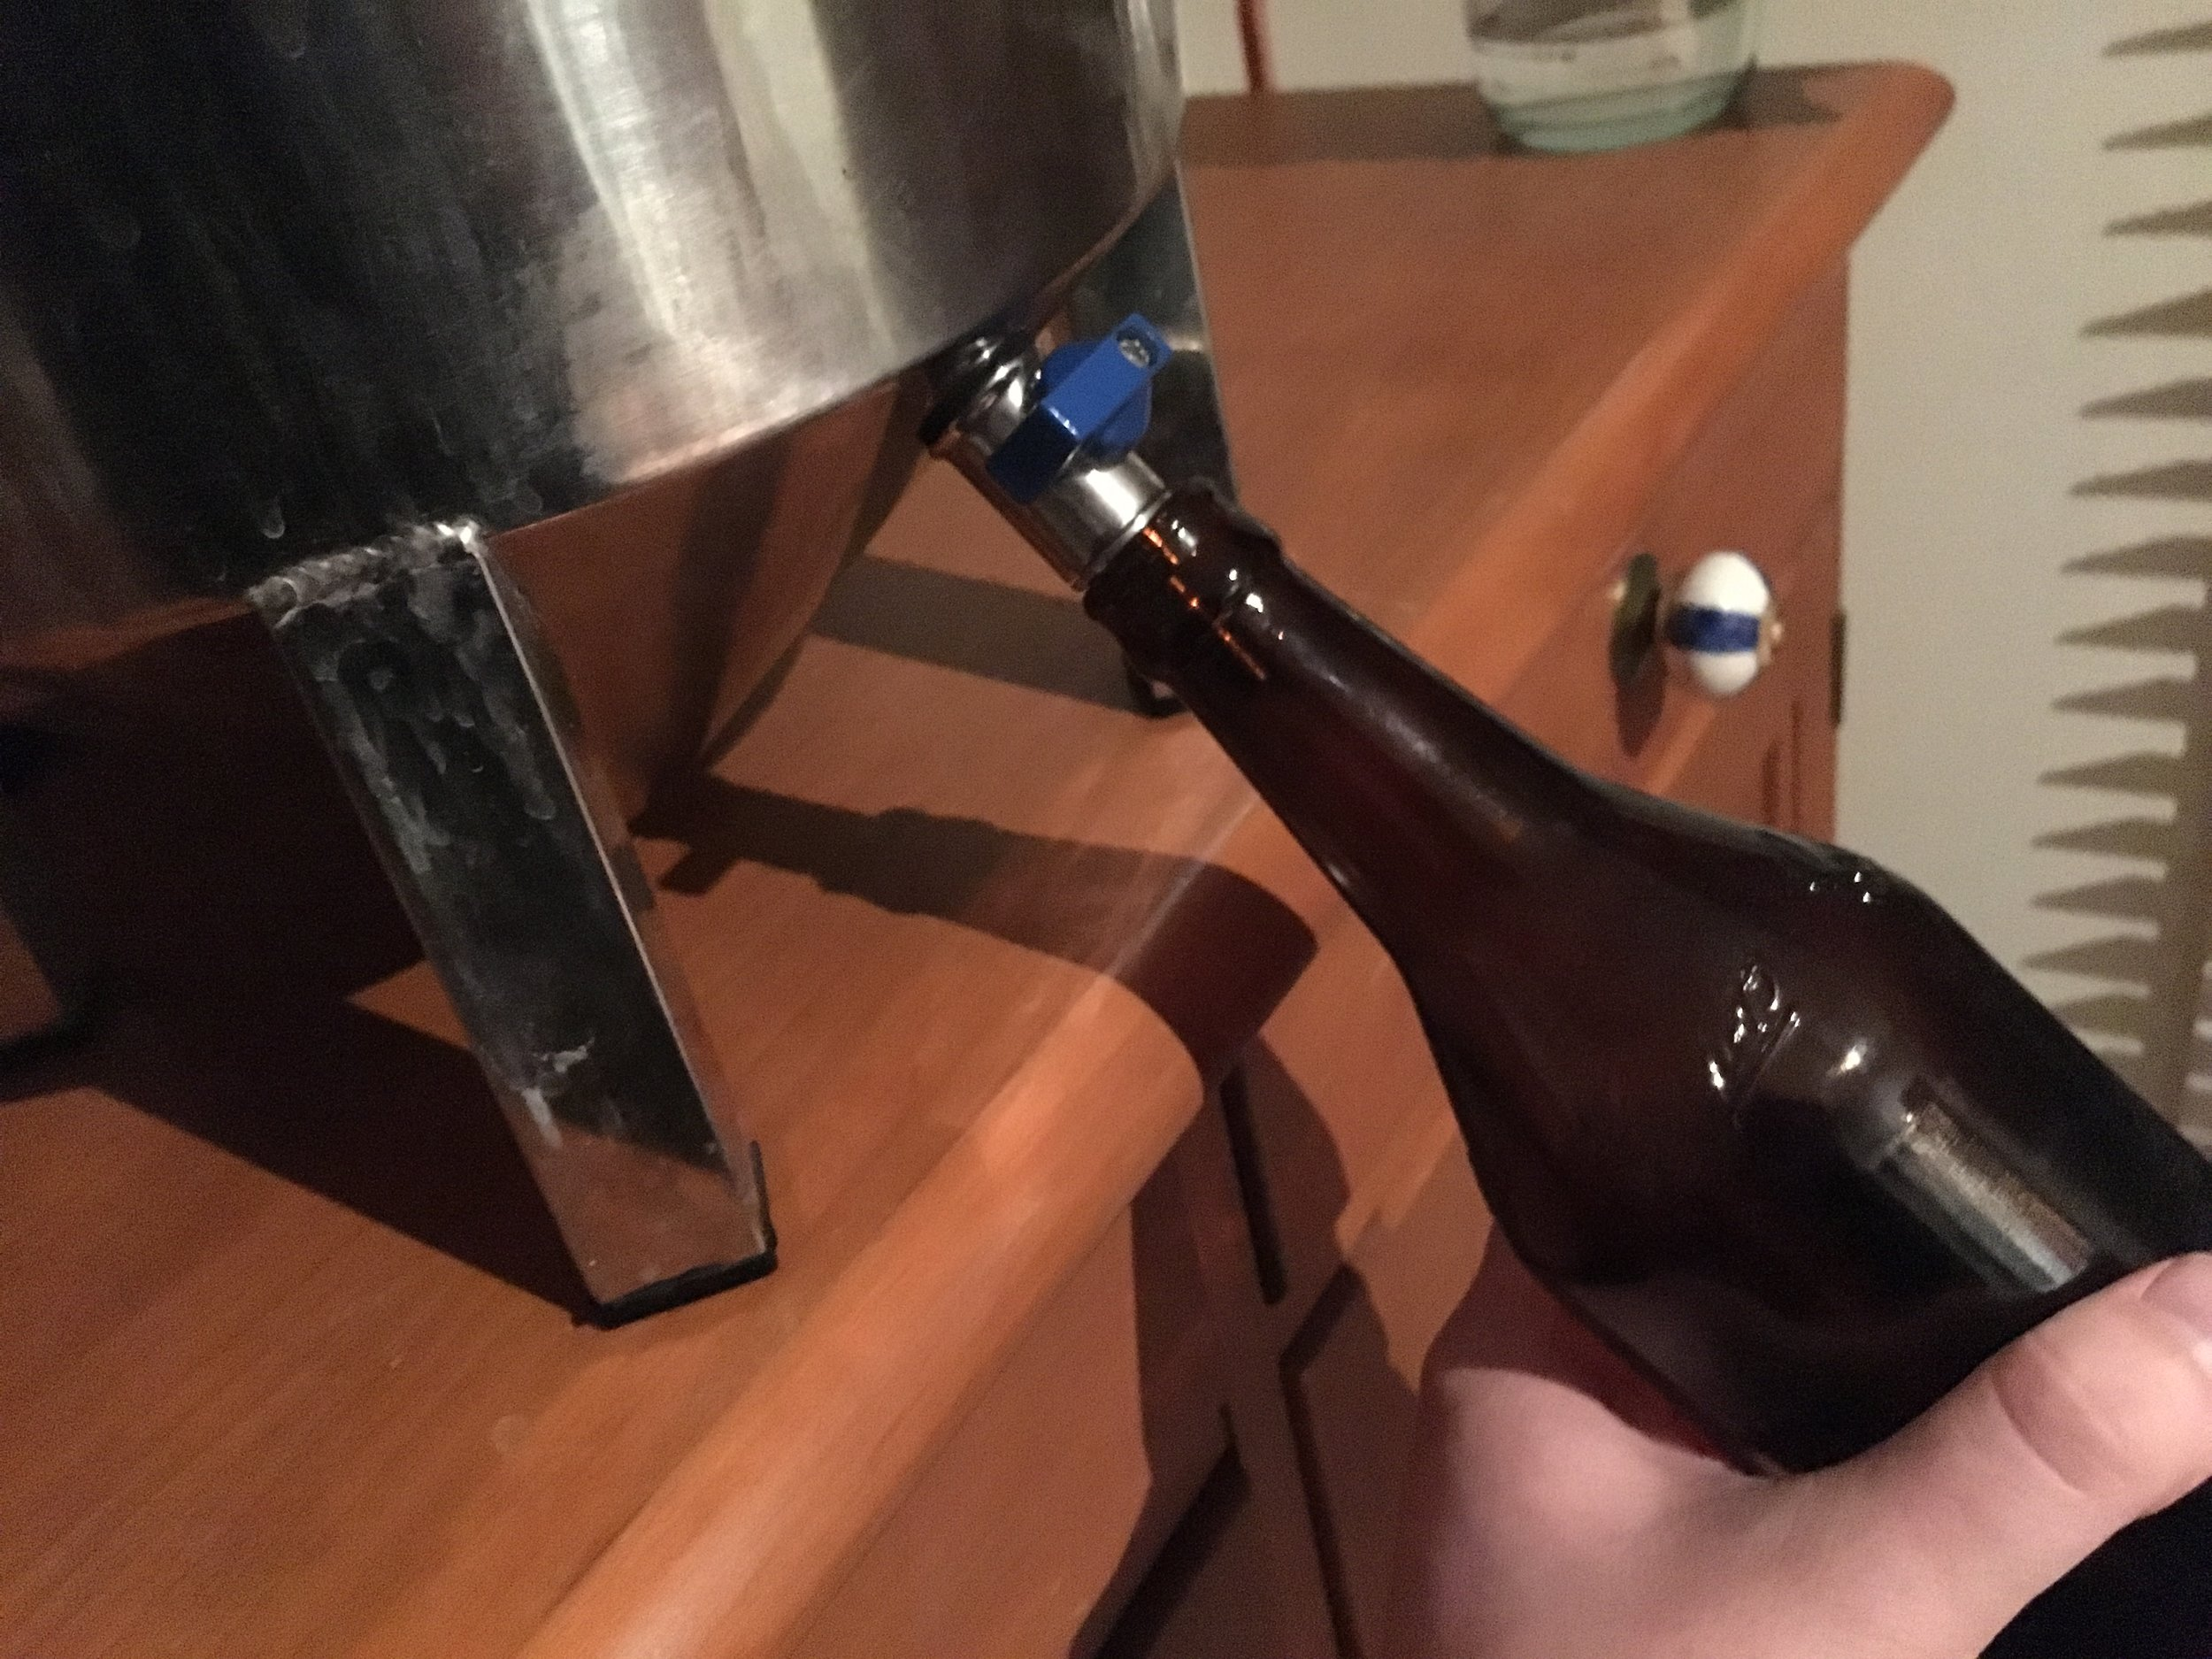 Filling a cleaned bottle